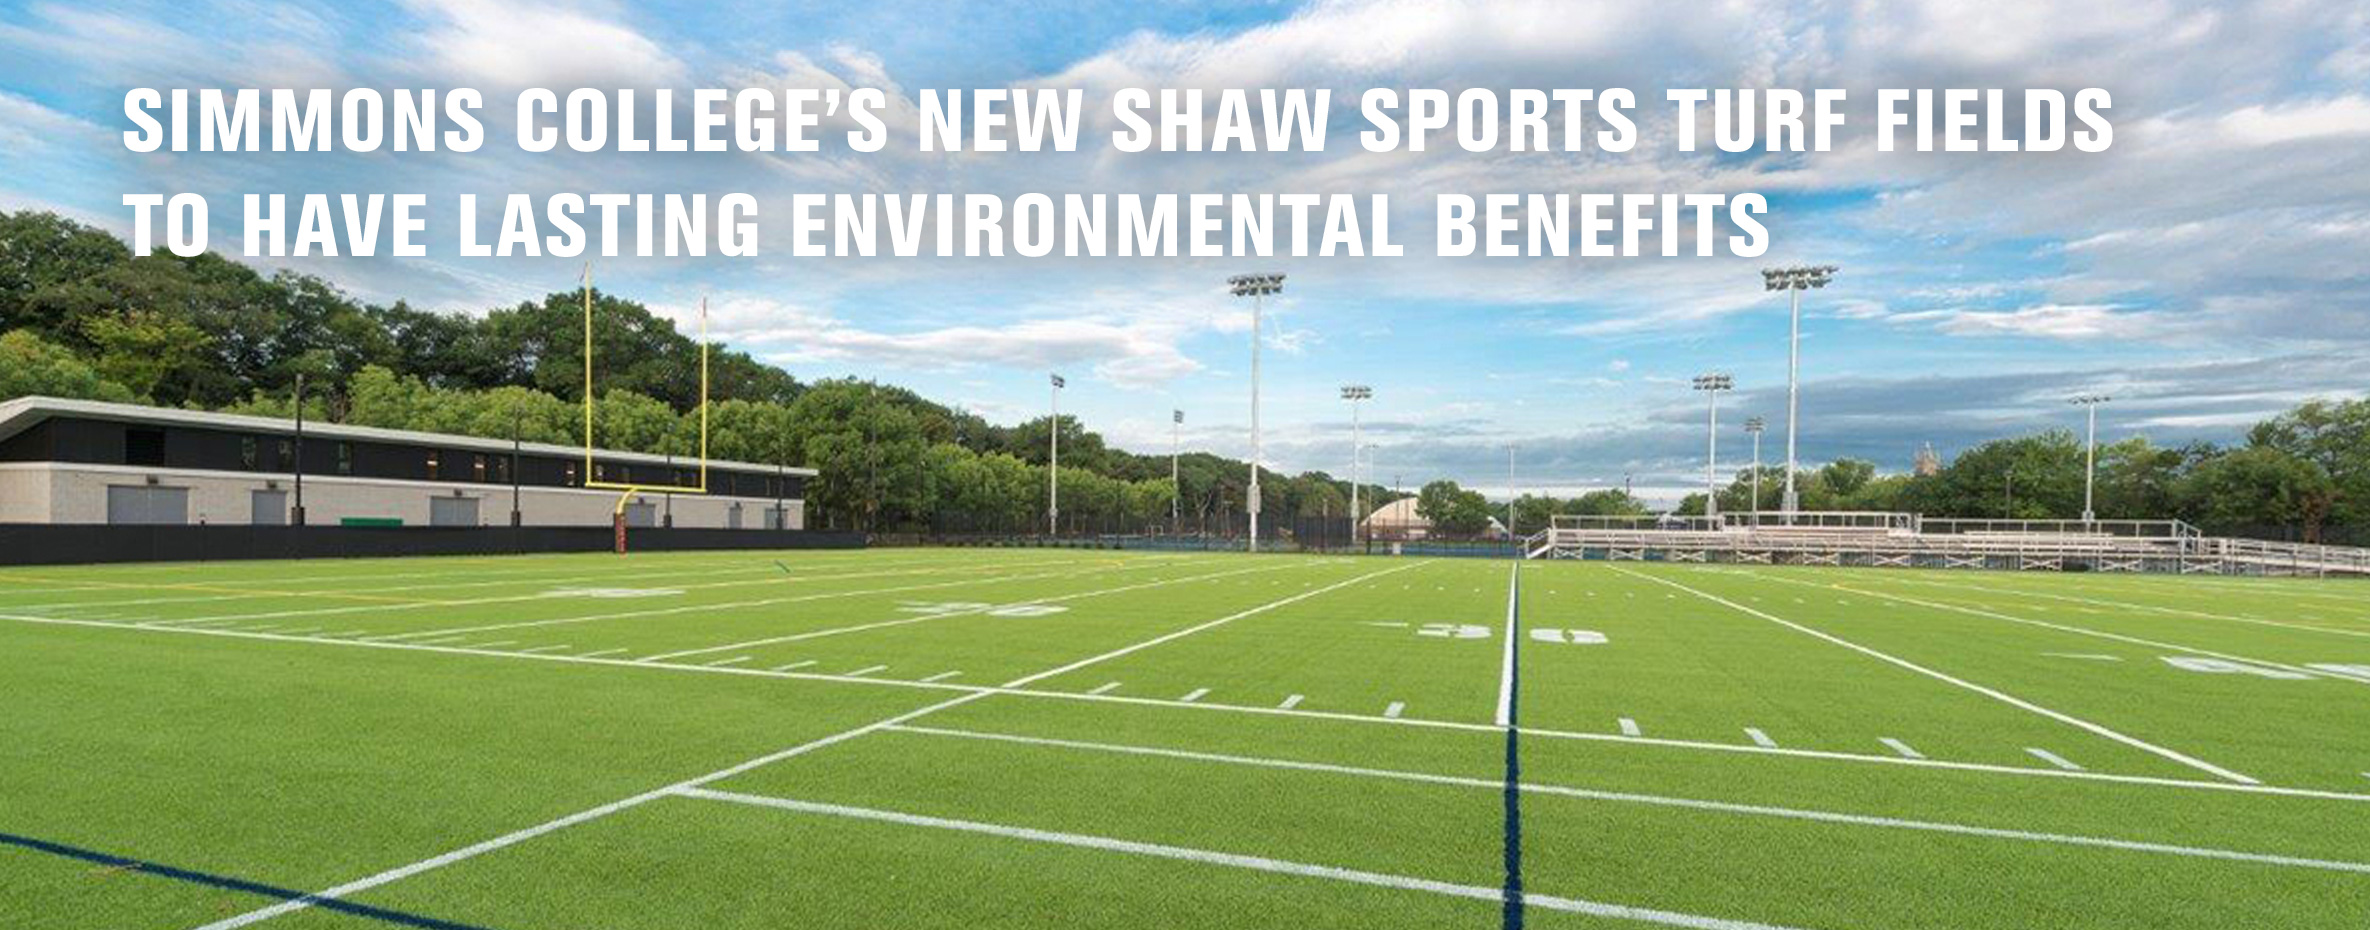 SIMMONS COLLEGE'S NEW SHAW SPORTS TURF FIELDS TO HAVE LASTING ENVIRONMENTAL BENEFITS Image